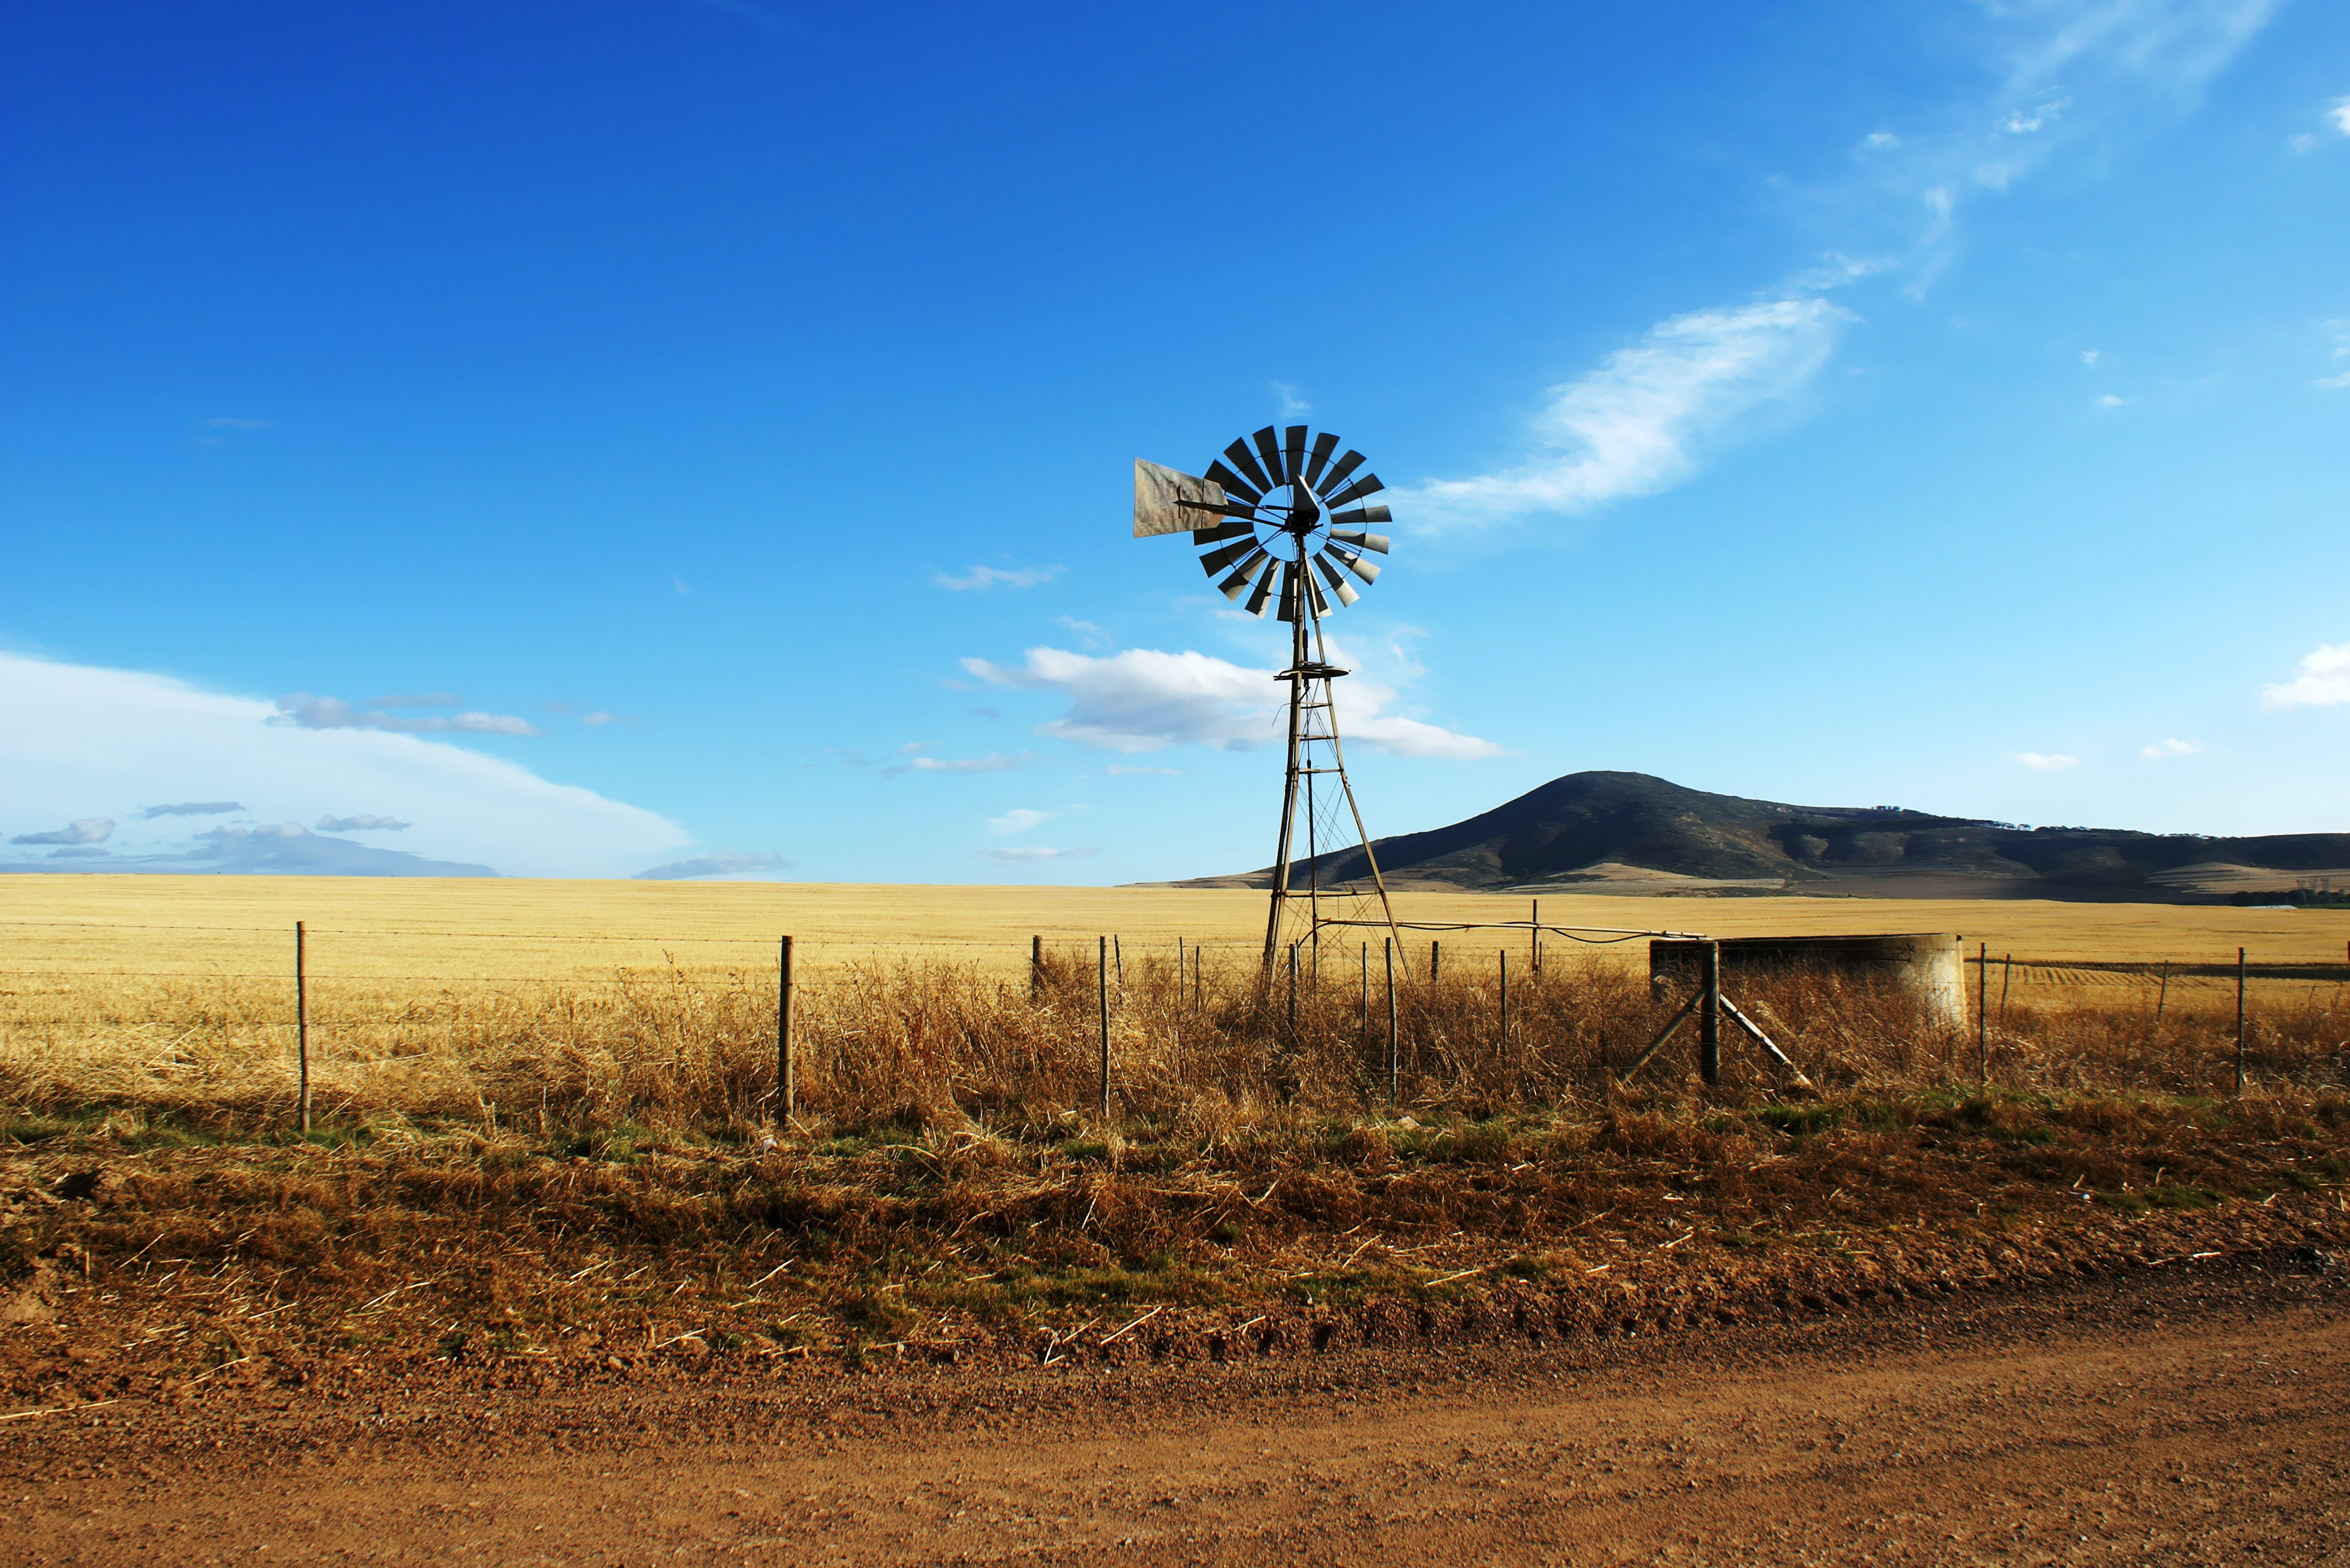 Country Scenes Wallpaper Country Scene Wallpaper Photo Collection o